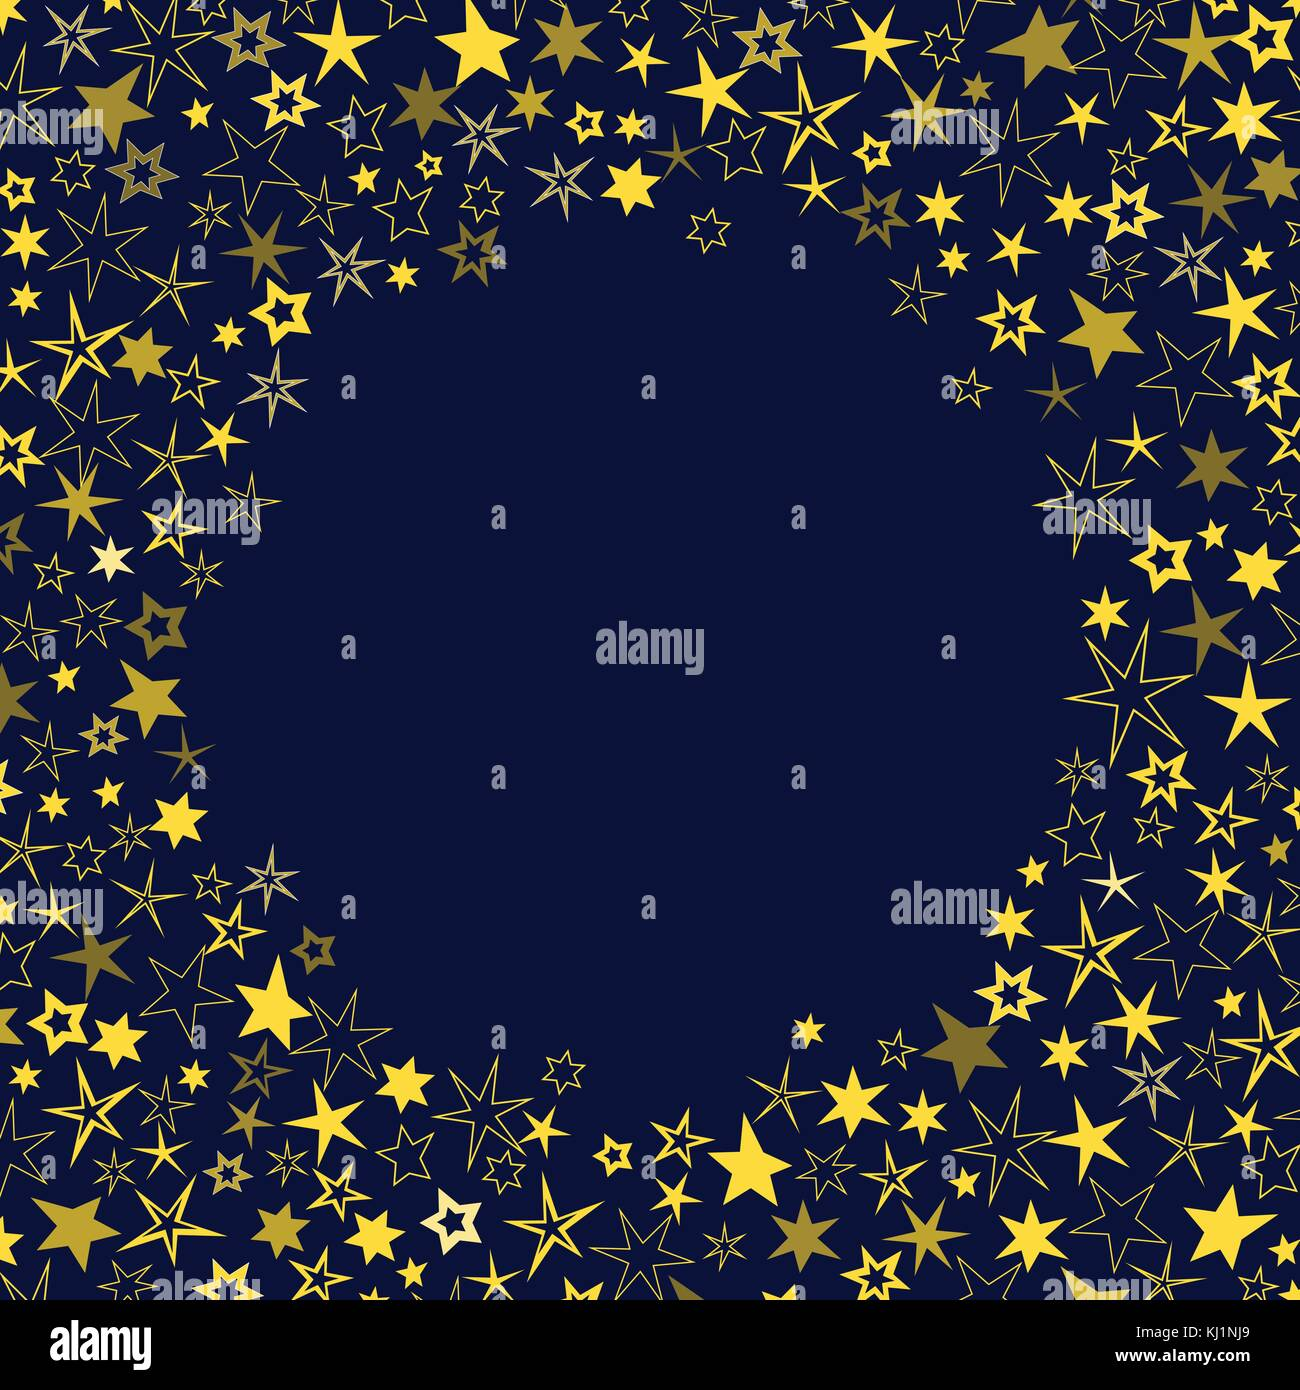 Blue Dark and yellow background pictures new photo